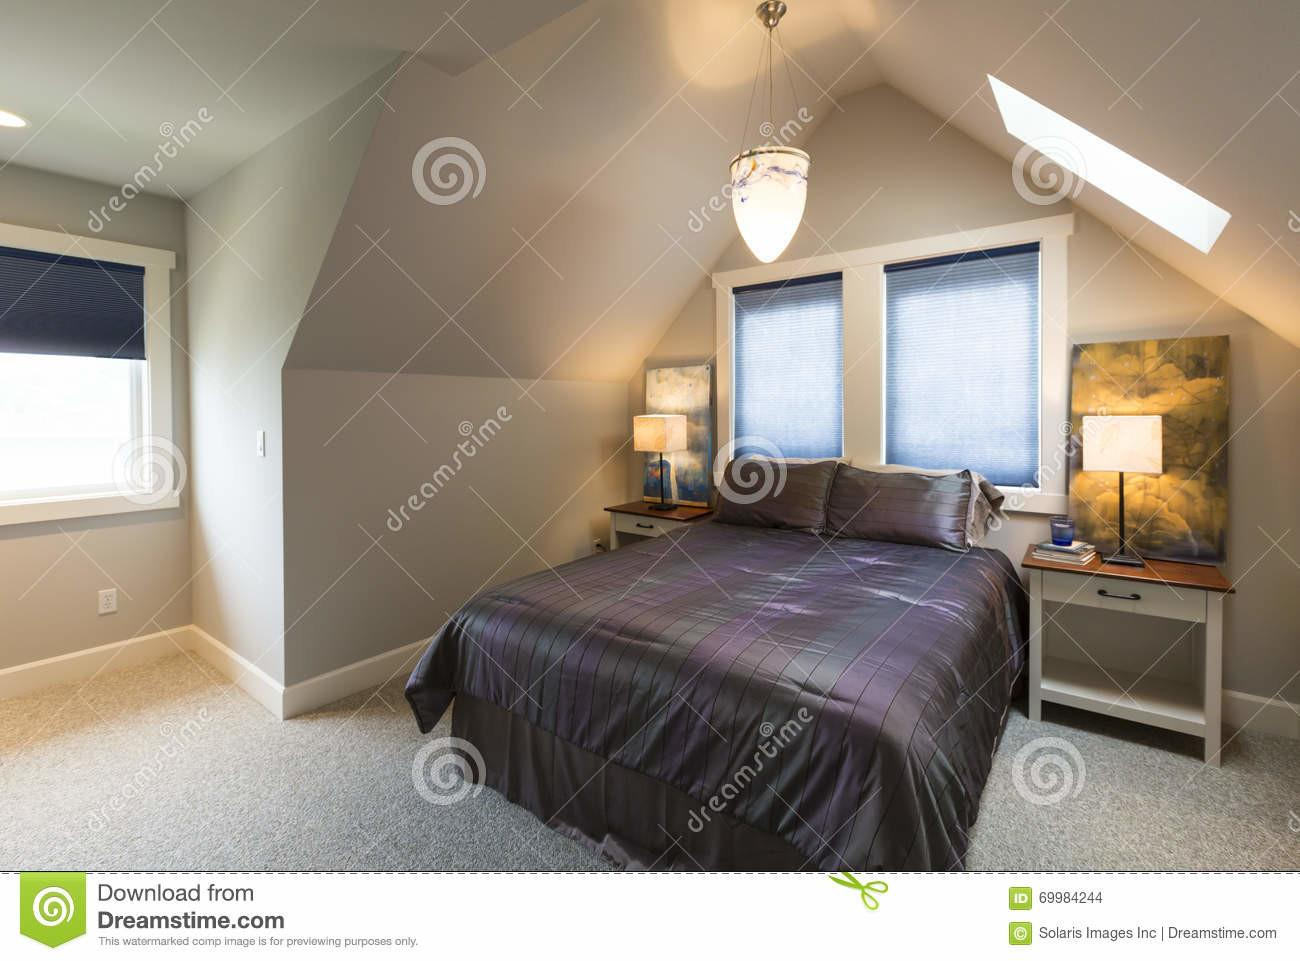 Bedroom Accent Lighting Ideas Bed Bedside Tables